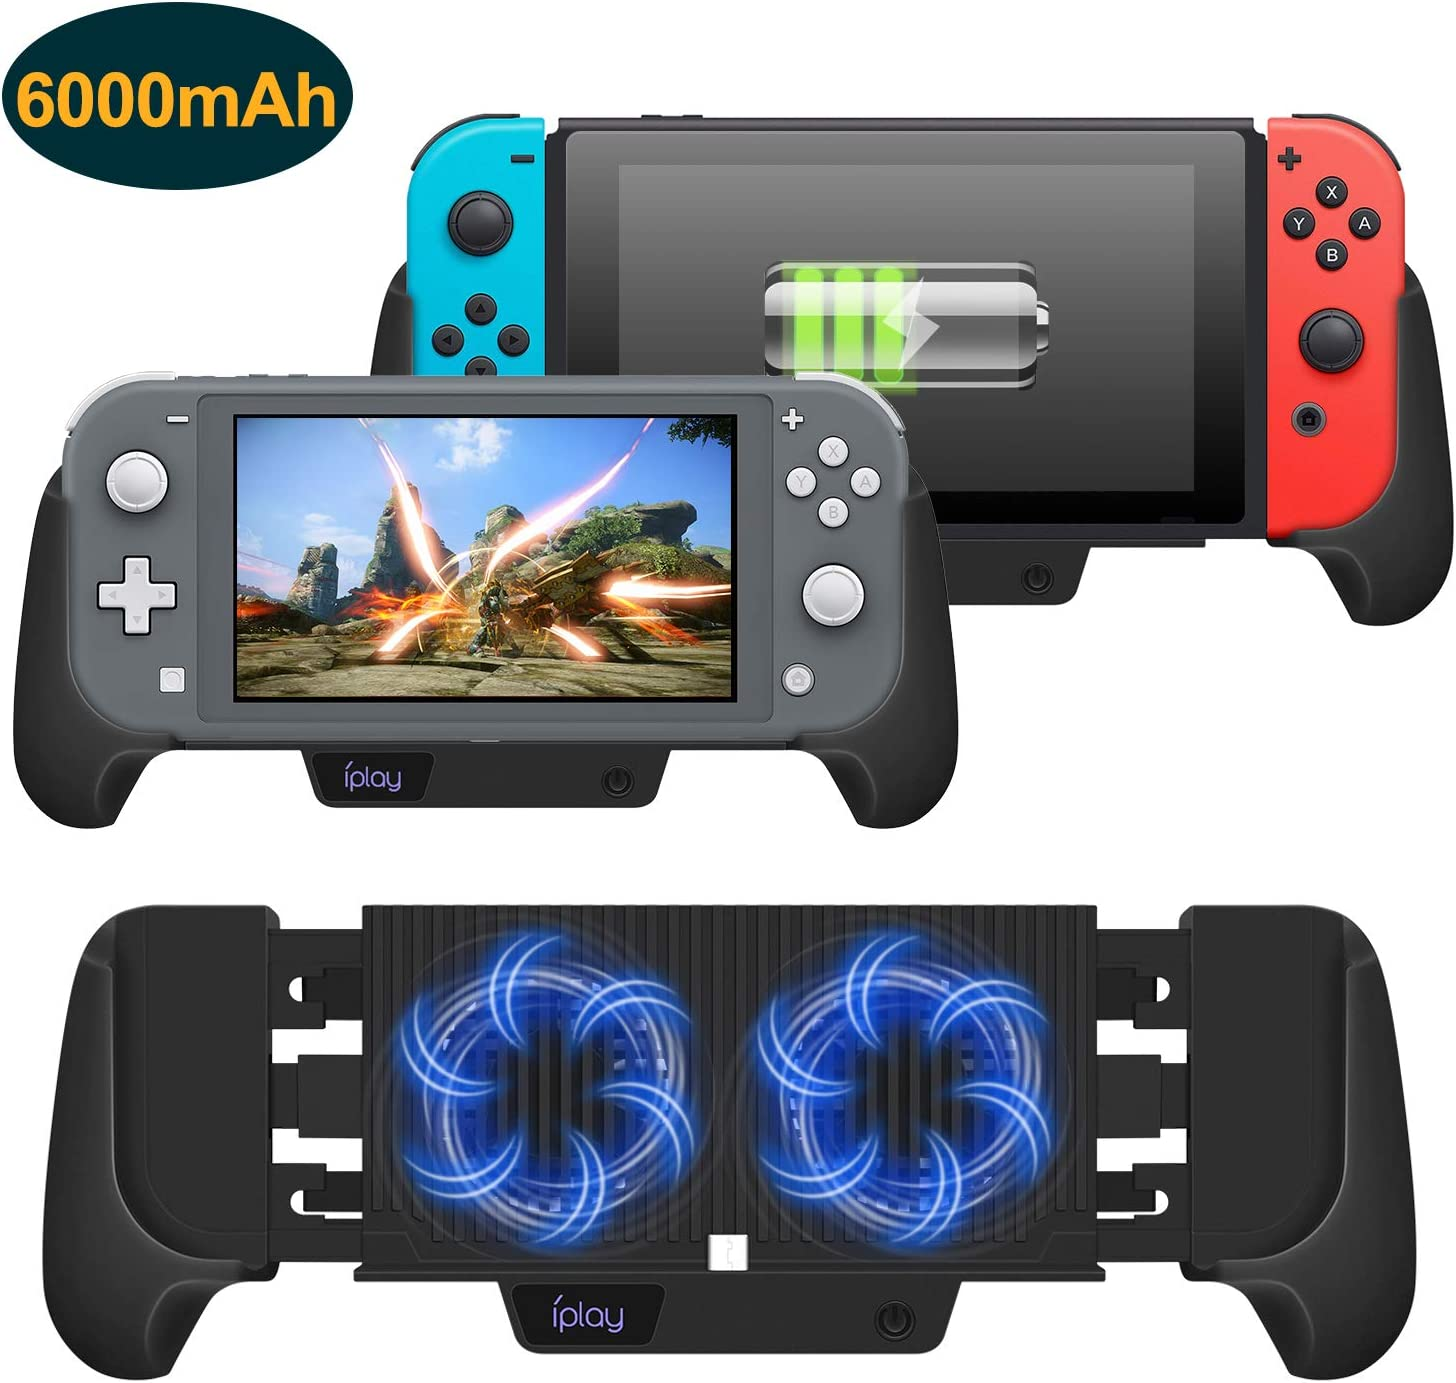 Cooling Charging Grip for Nintendo Switch & Switch Lite, 4 in 1 Accessories Works as Fan, Charger, Grip and Foldable Stand for Nintendo Switch Lite and Nintendo Switch (Black)